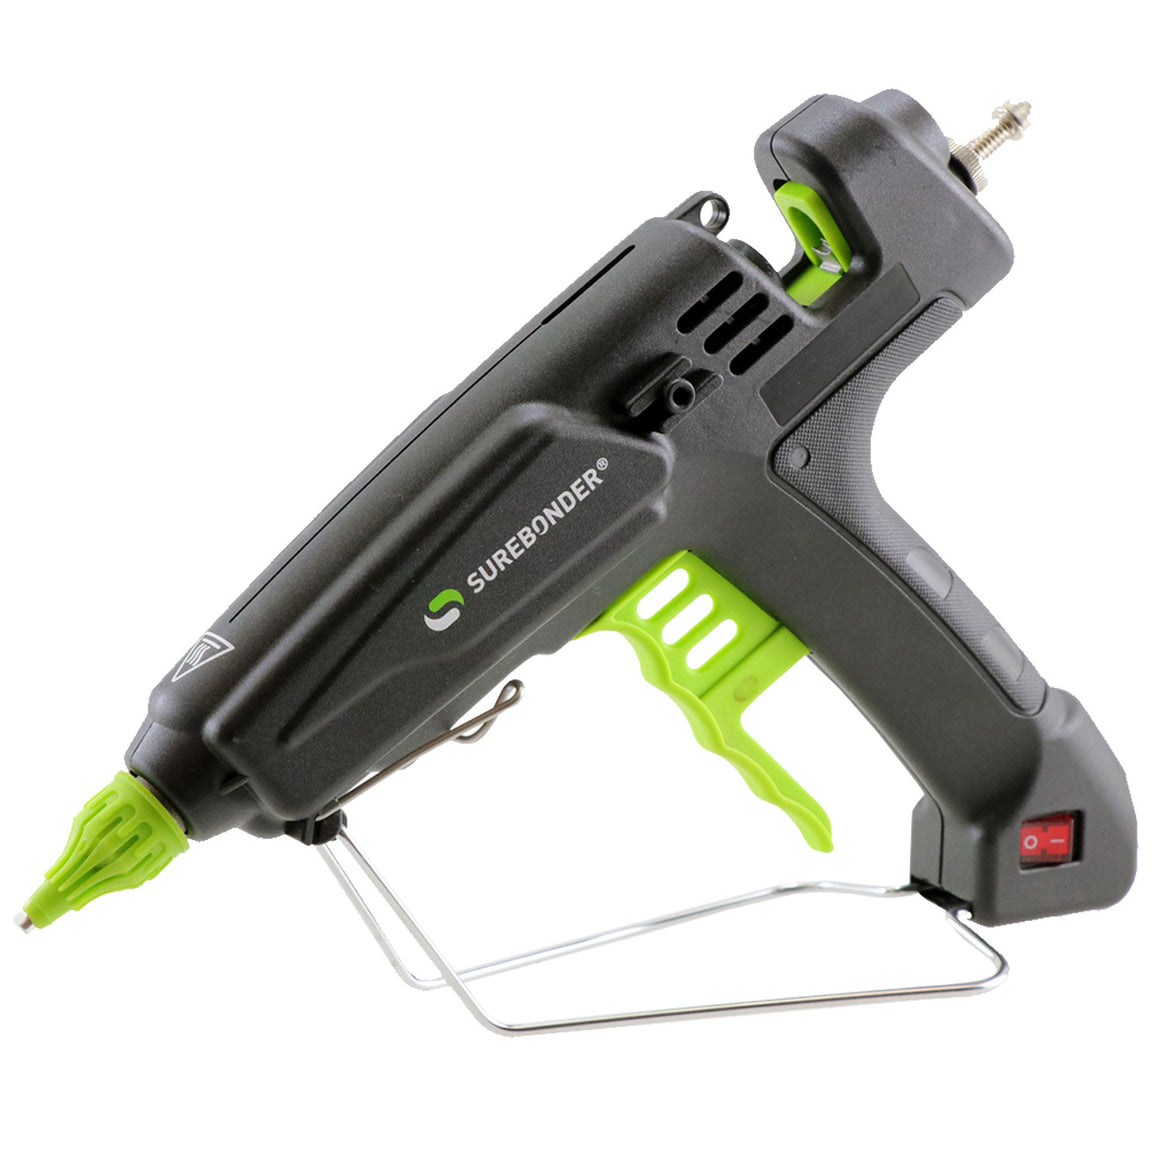 "PRO8000A 180 Watt Quick Heating Professional Heavy Duty Hot Glue Gun - Uses Full Size, 7/16"" Glue Sticks"